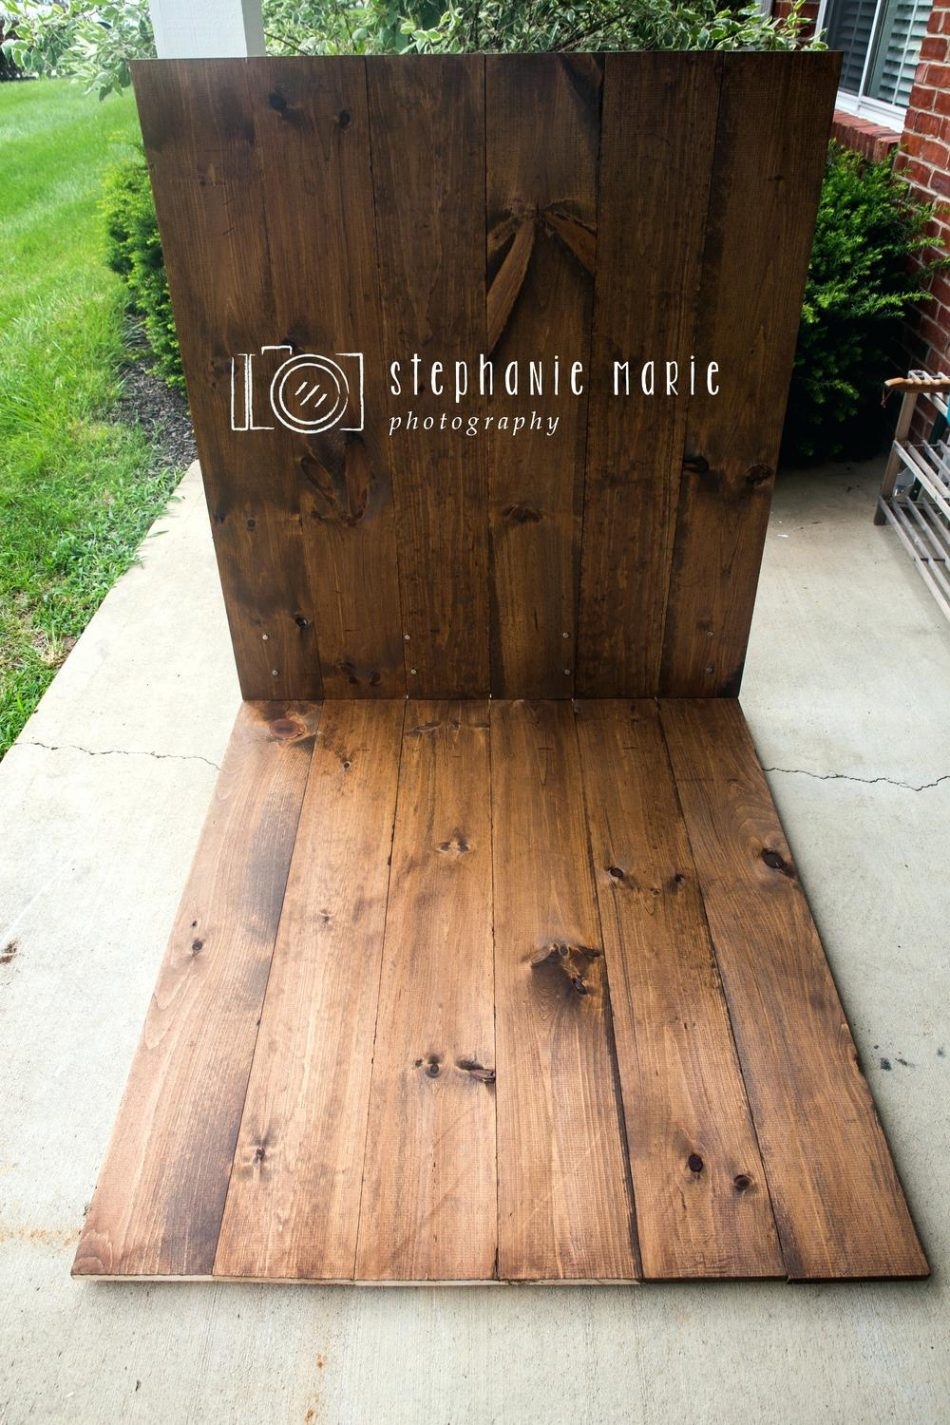 Photography Weathered Faux Wood Floor Drop Background Mat